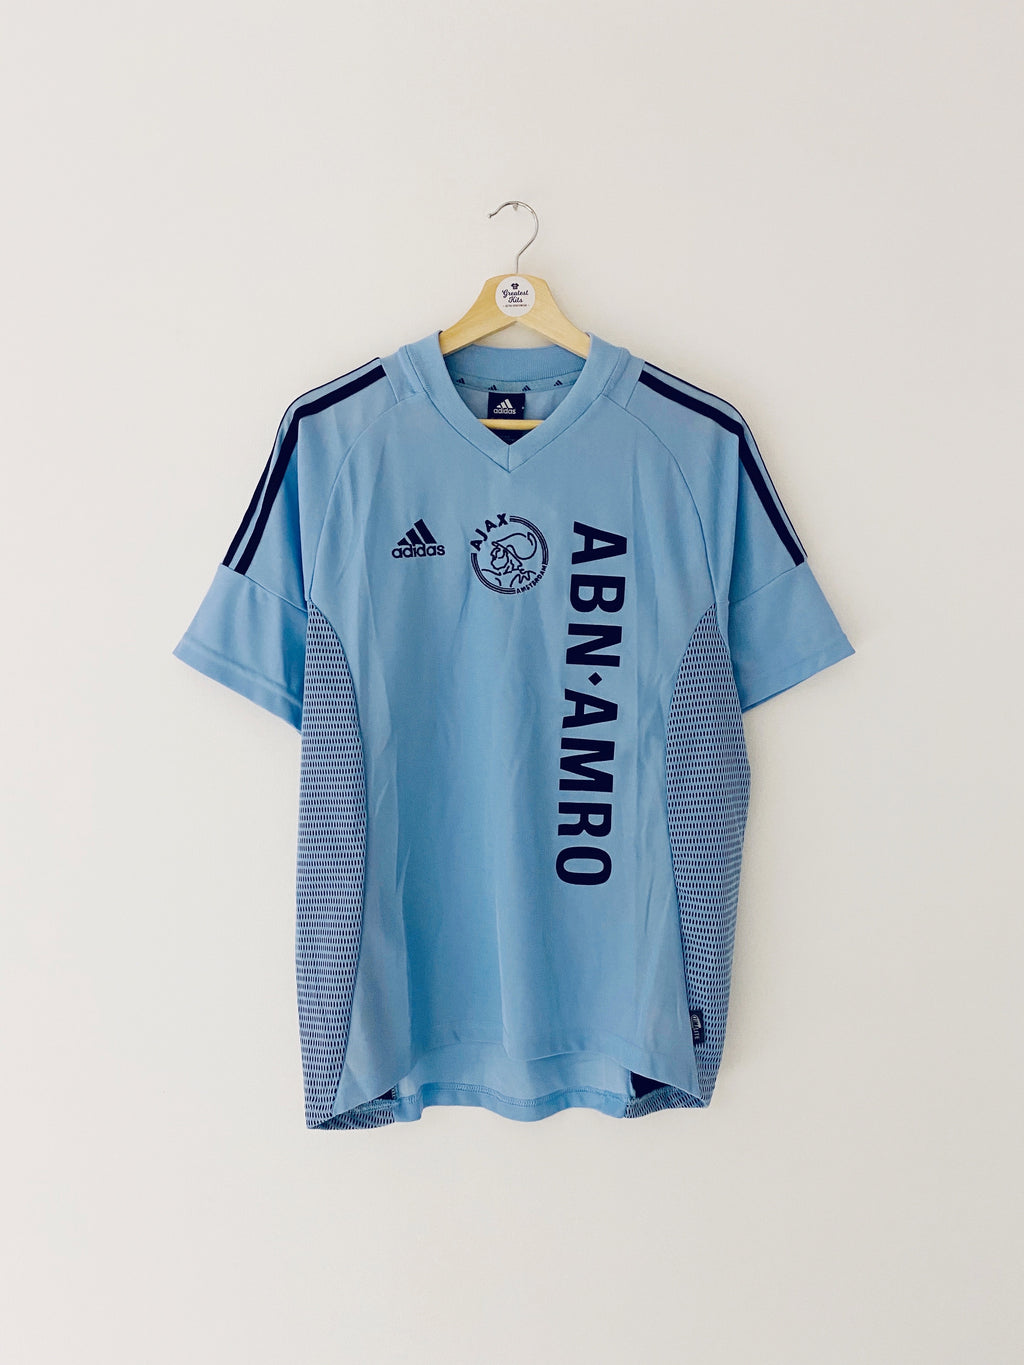 2002/03 Ajax Away Shirt (S) 9/10